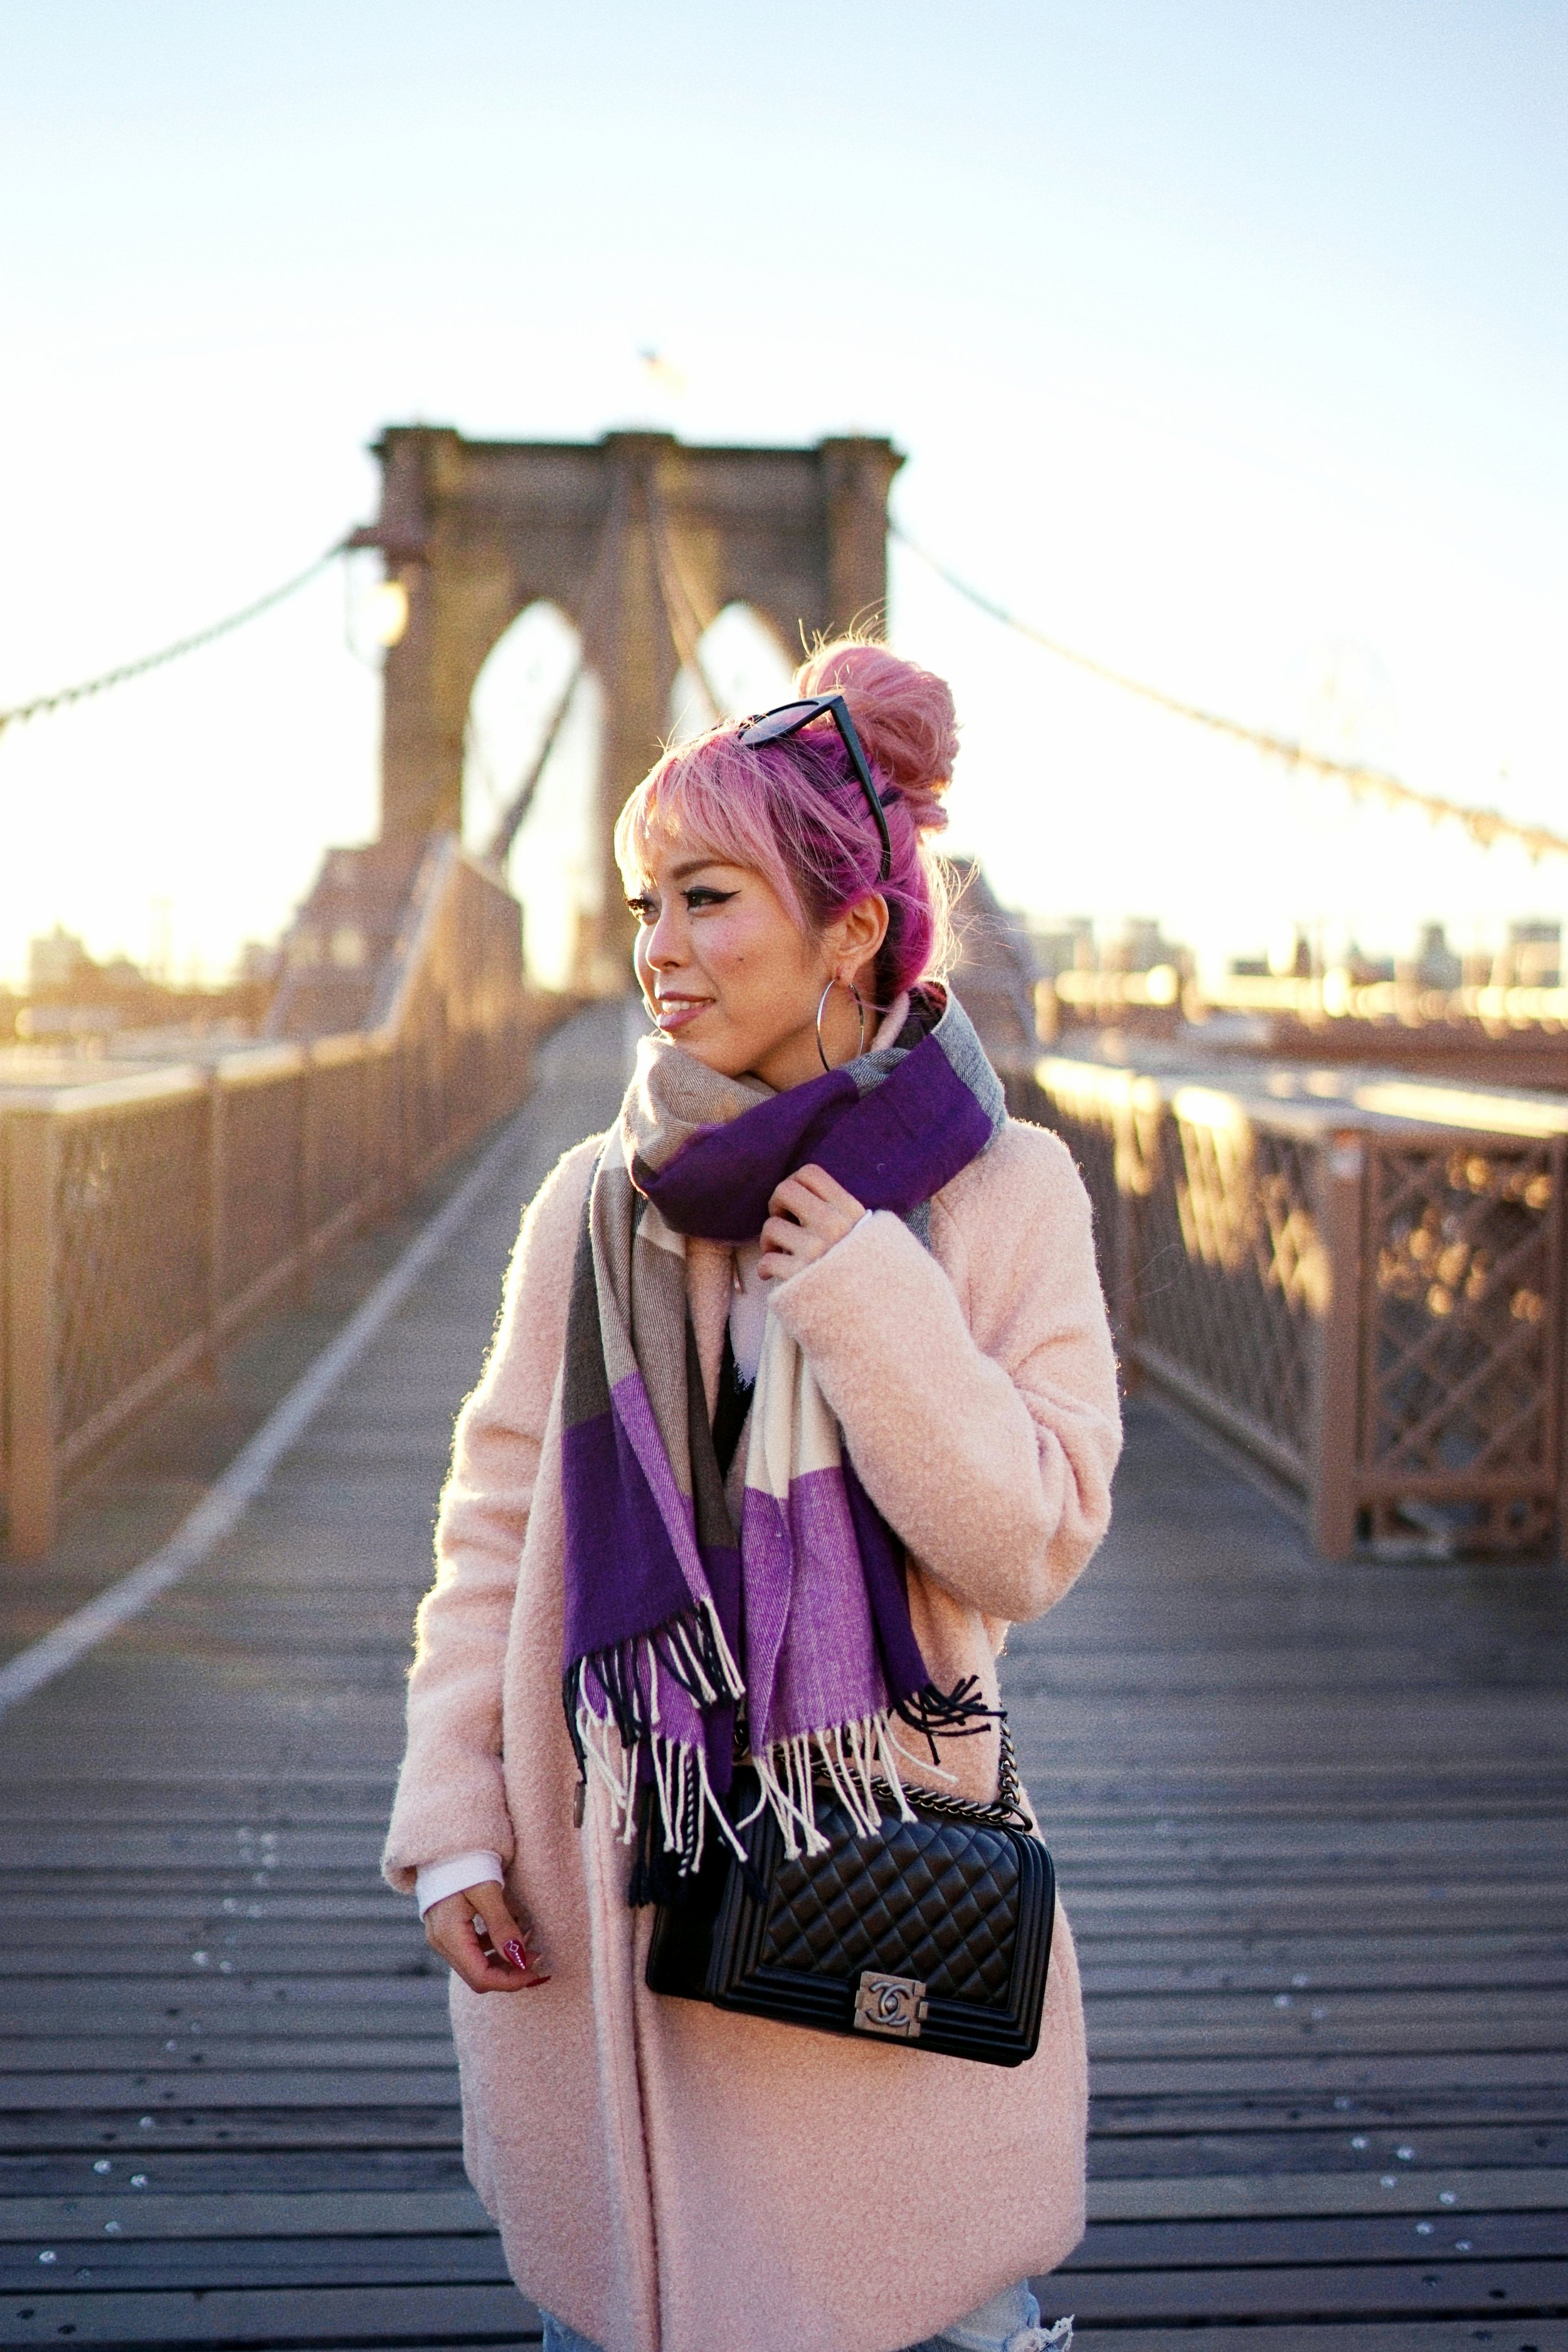 GAP Scarf-Zara pink coat-MOUSSY- frayed hem jeans- CHANEL Lambskin Quilted Medium Boy Flap Black-Adidas Superstar Shoes-Urban Outfitters Sunglasses-Aika's Love Closet-Sealtle fashion style blogger from japan-pink hair-brooklyn bridge-new york-city 5